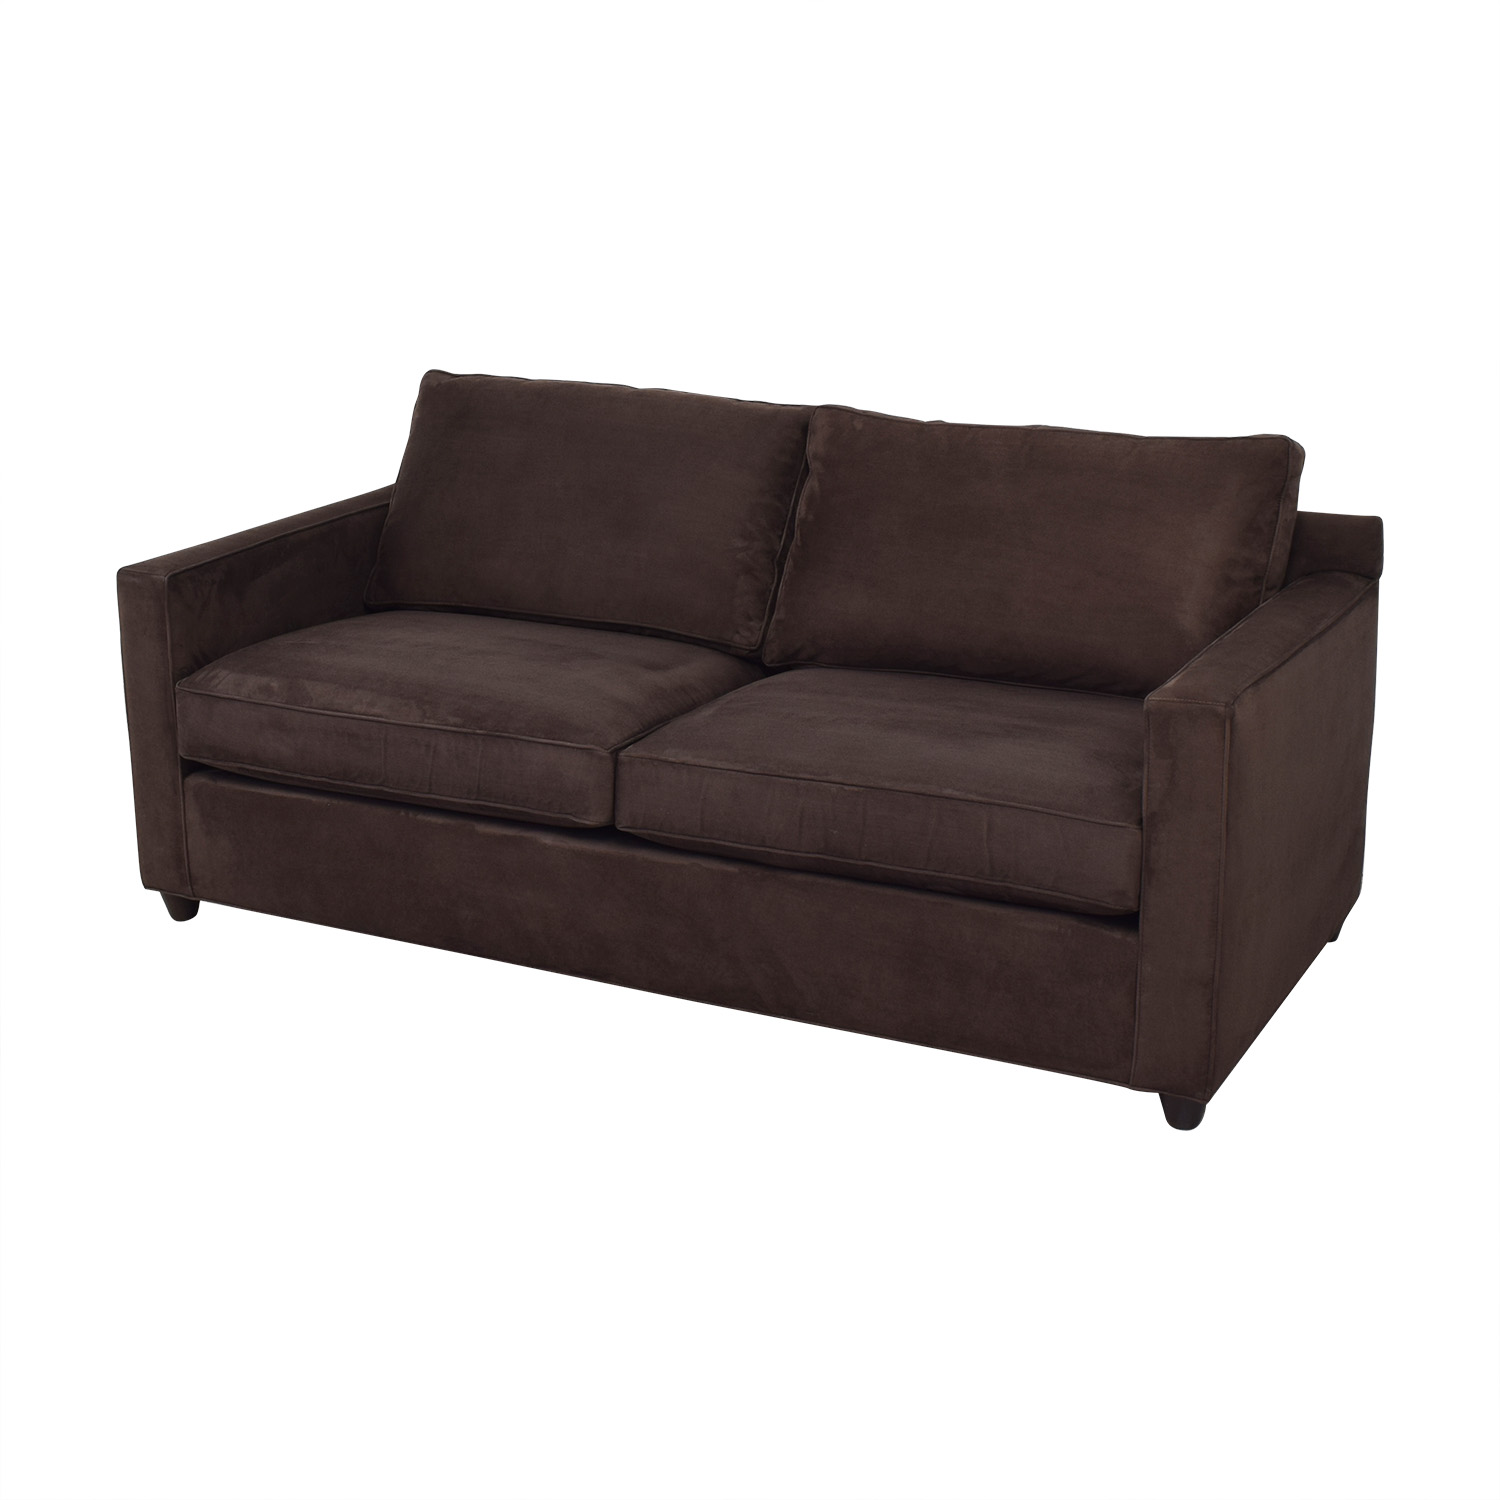 buy Crate & Barrel Sofa Crate & Barrel Sofas